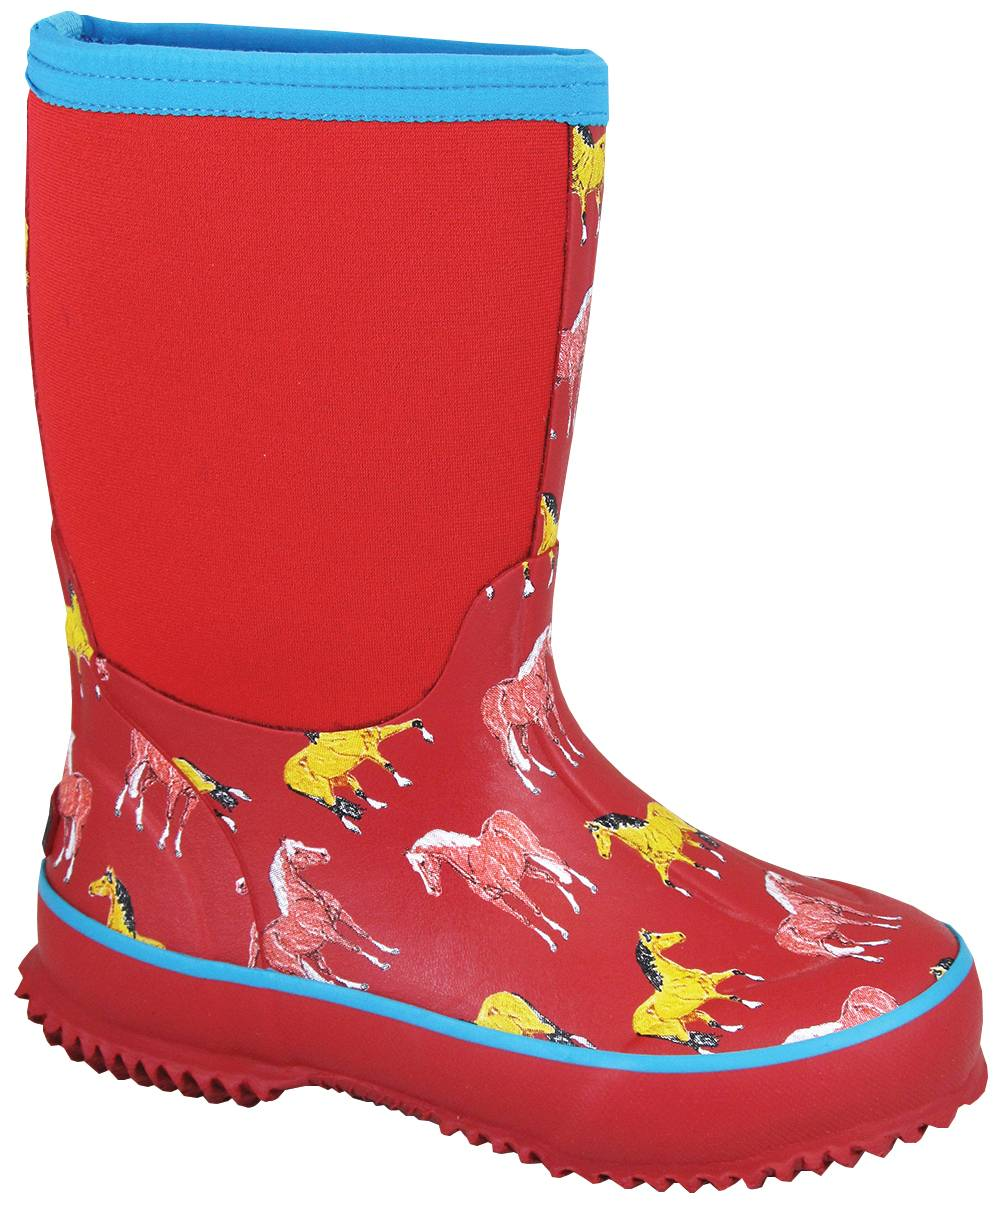 Smoky Mountain Child's Horsin Around Amphibian Boots